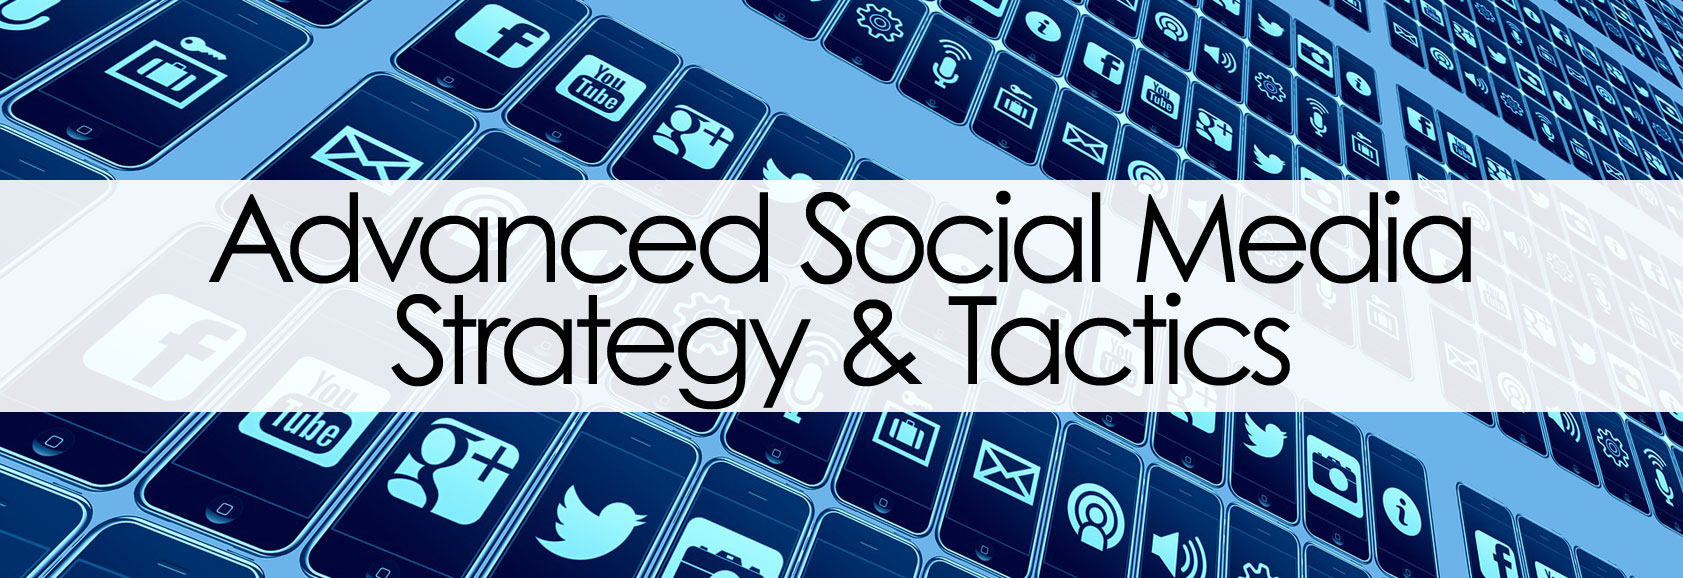 Advanced Social Media Marketing Banner